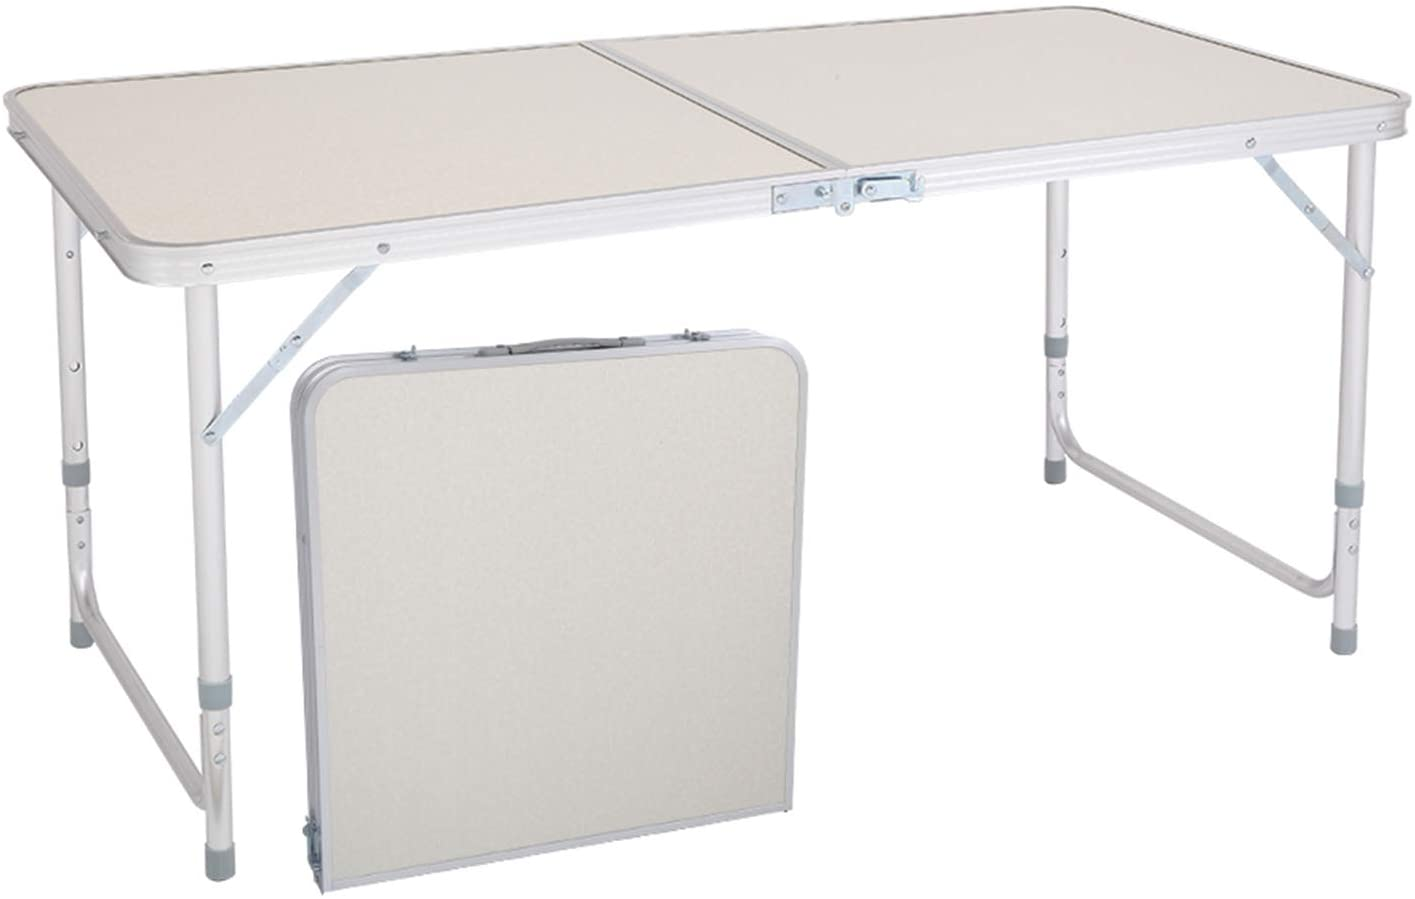 Folding Table Indoor Outdoor Heavy Free shipping Fo Free shipping anywhere in the nation Duty Portable Multipurpose